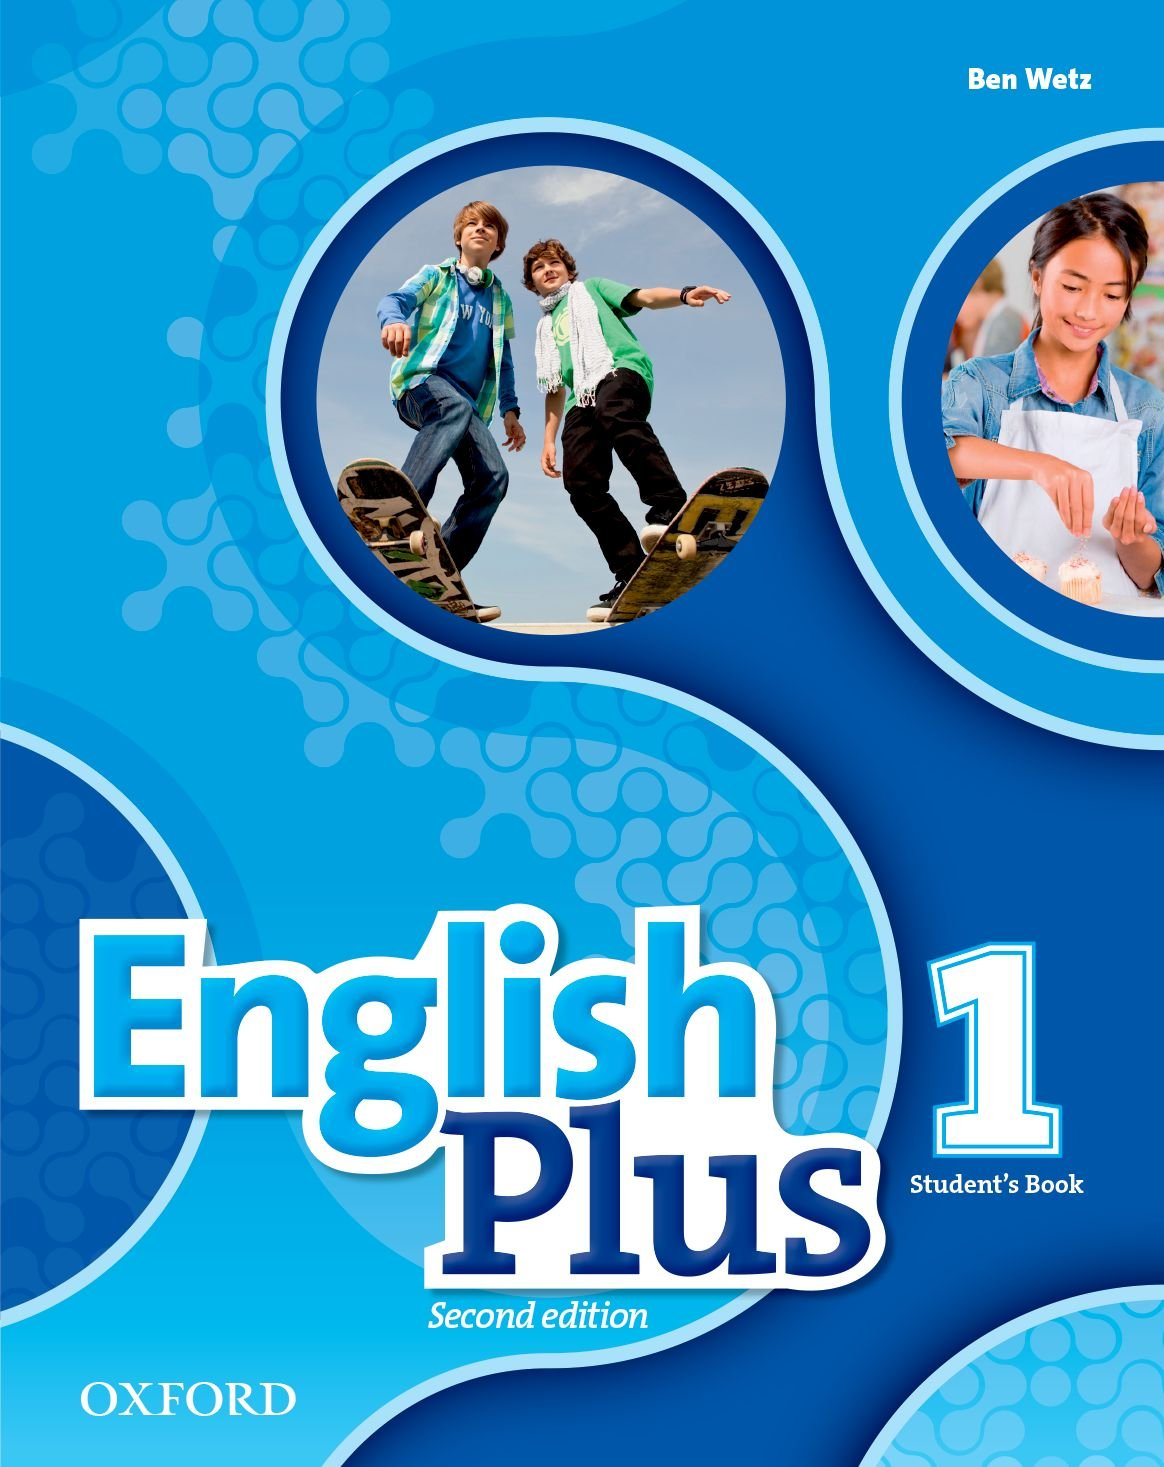 ENGLISH PLUS 1 2ED Student's Book